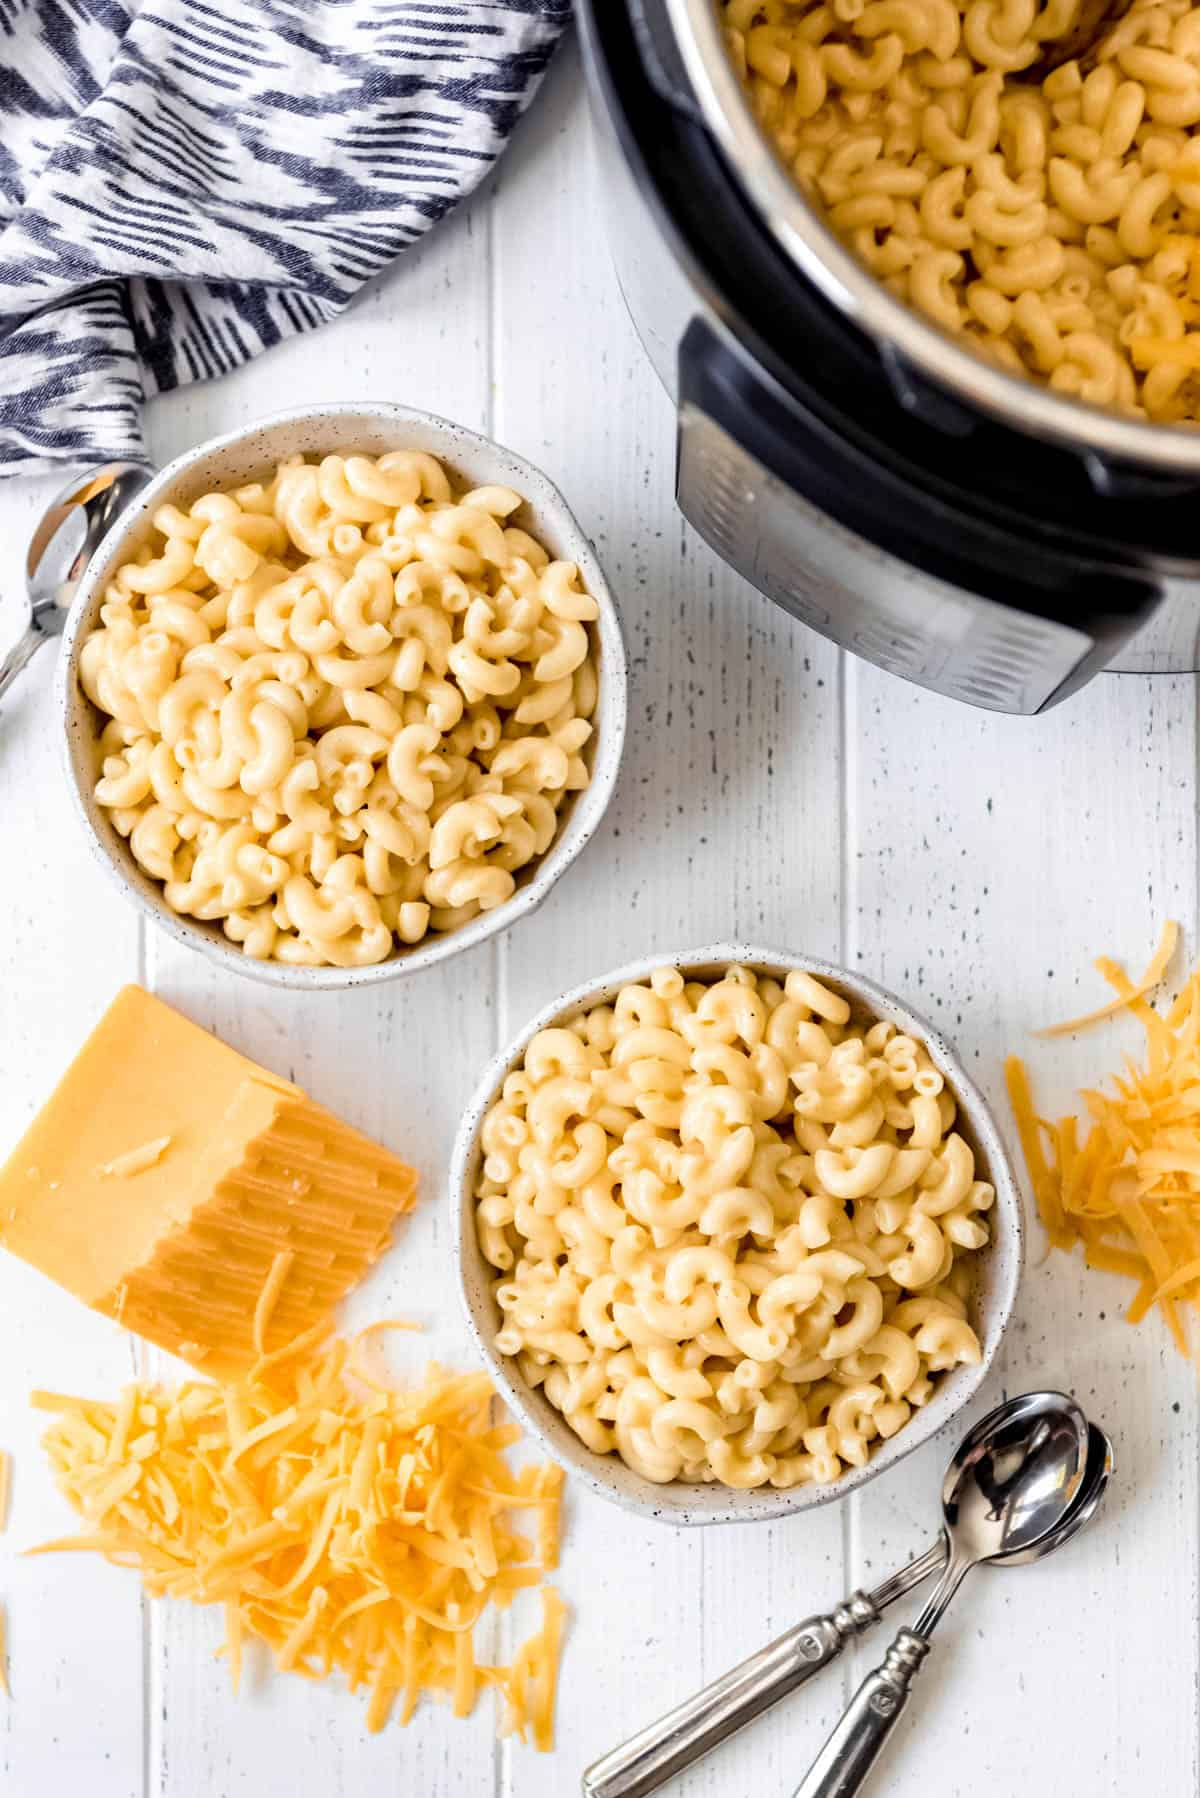 two bowls of macaroni and cheese next  to a block of cheddar cheese.